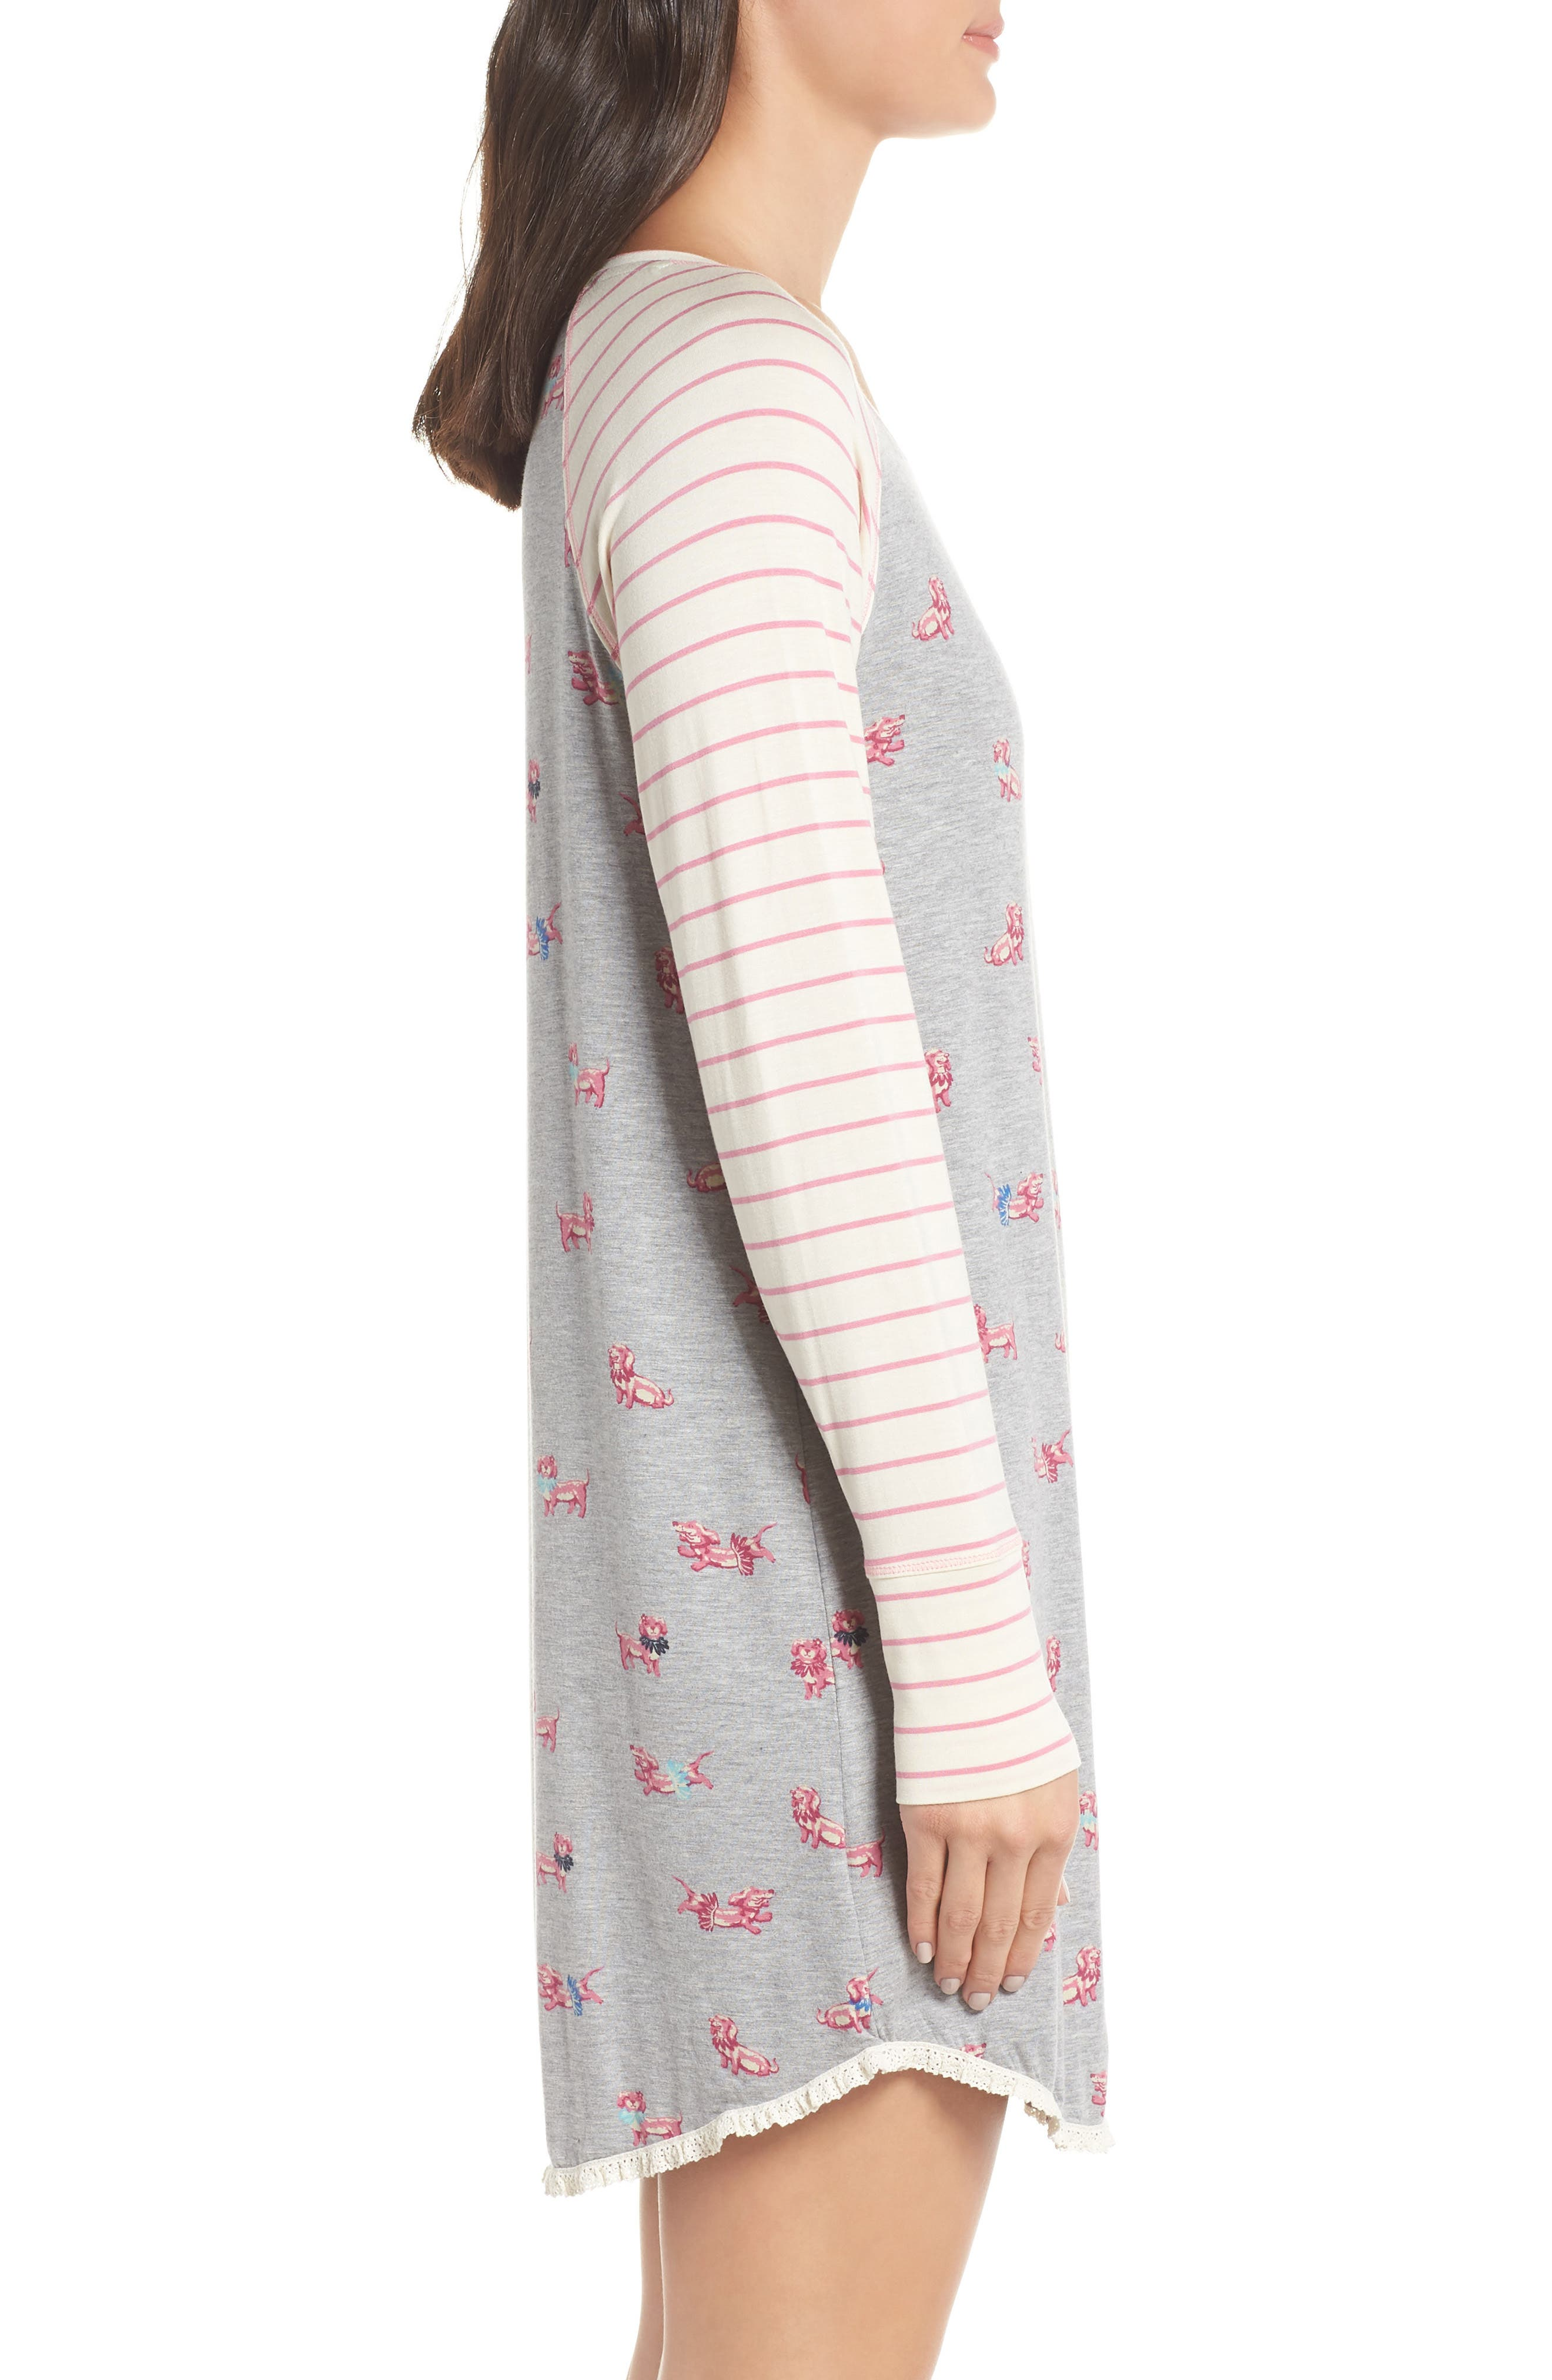 HATLEY, Nighty Nightshirt, Alternate thumbnail 3, color, 020